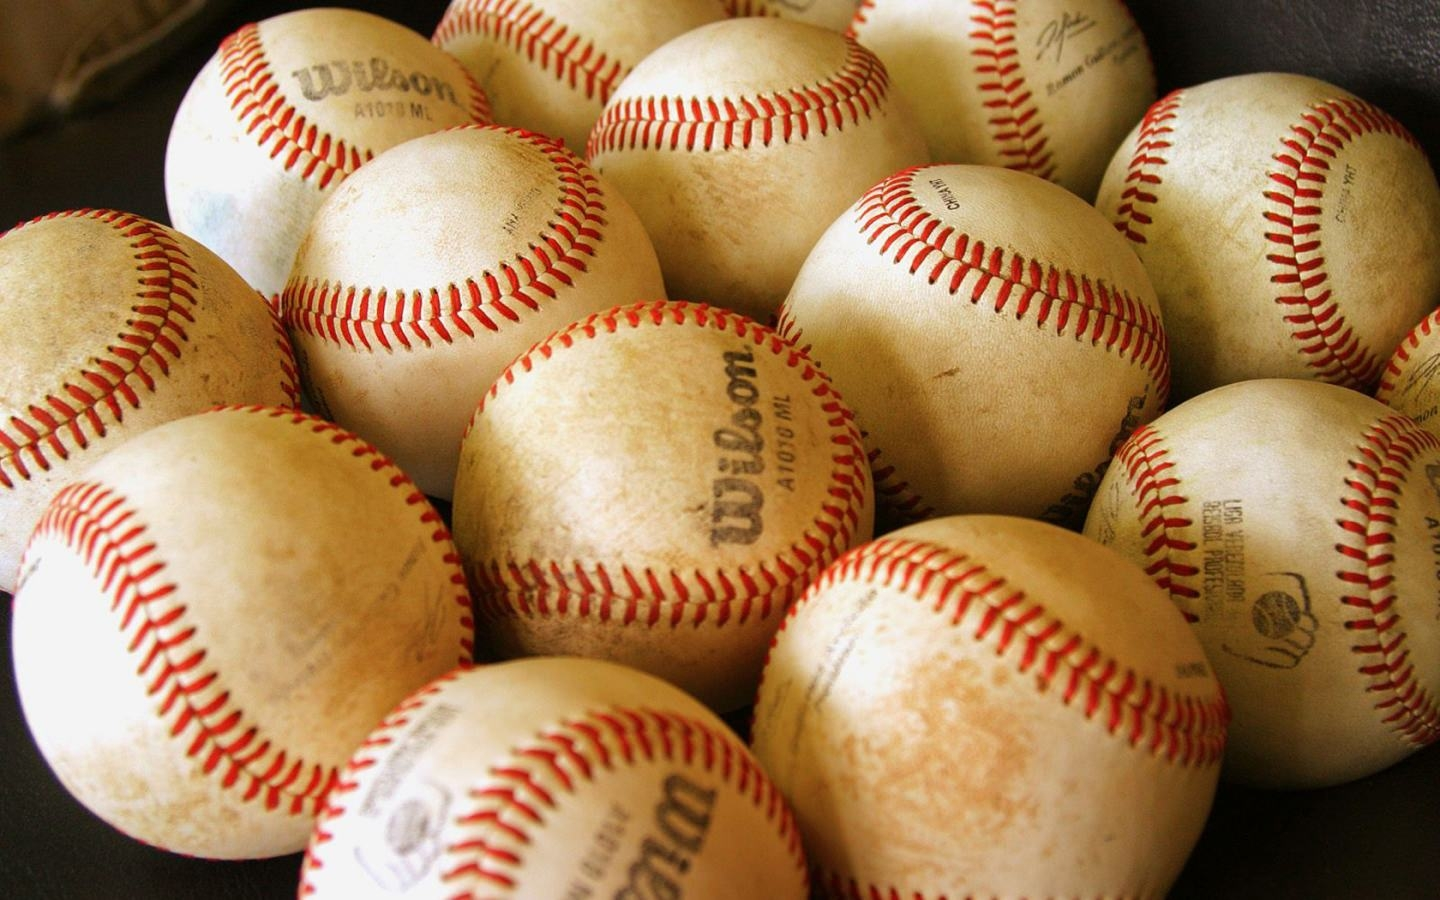 Baseballs Wallpaper For Free Download